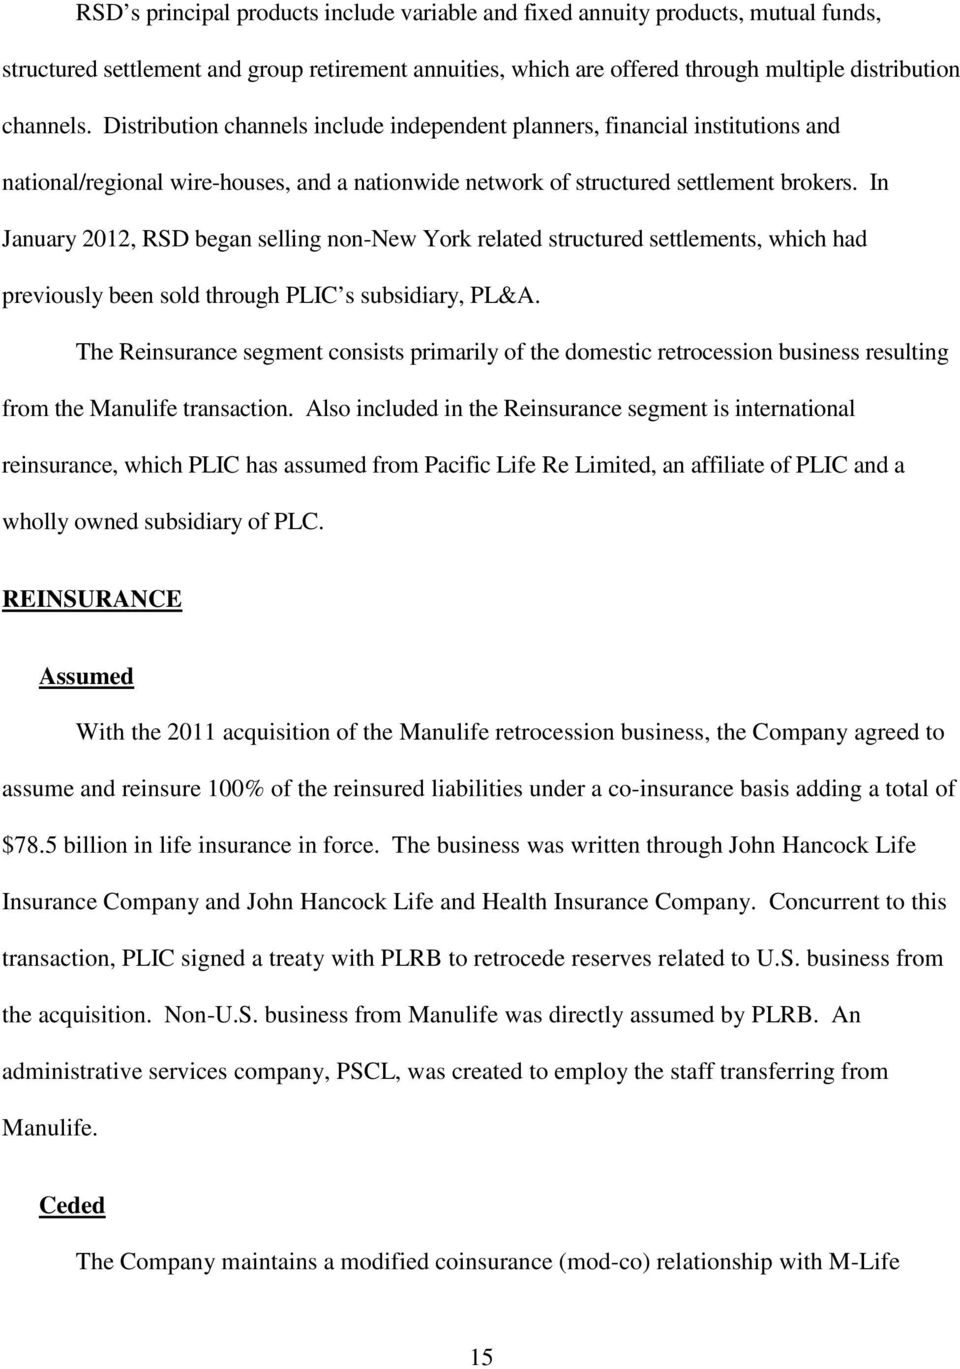 In January 2012, RSD began selling non-new York related structured settlements, which had previously been sold through PLIC s subsidiary, PL&A.